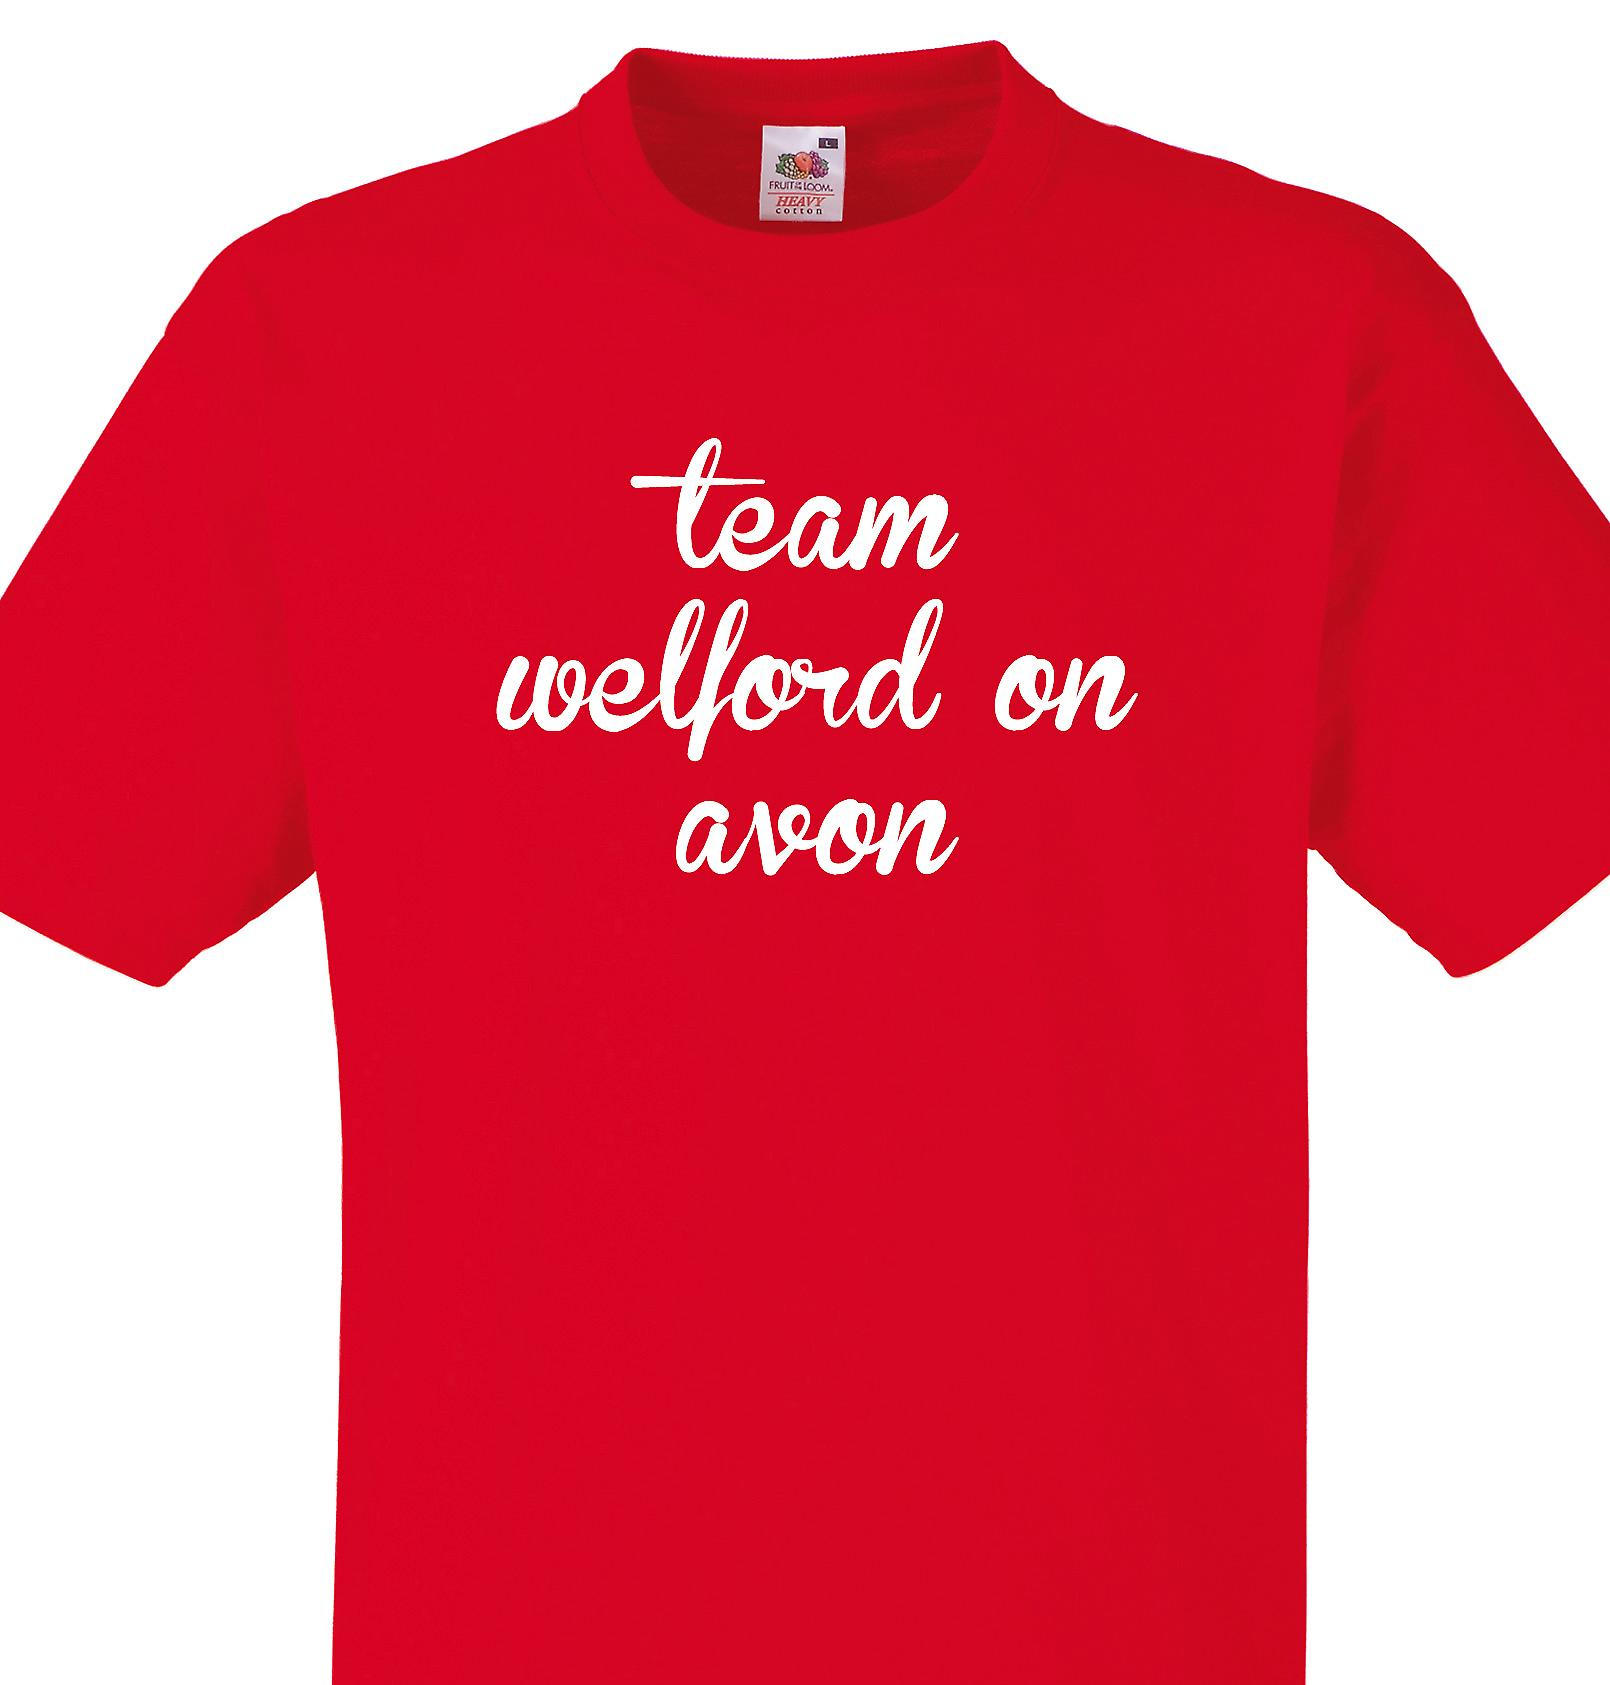 Team Welford on avon Red T shirt